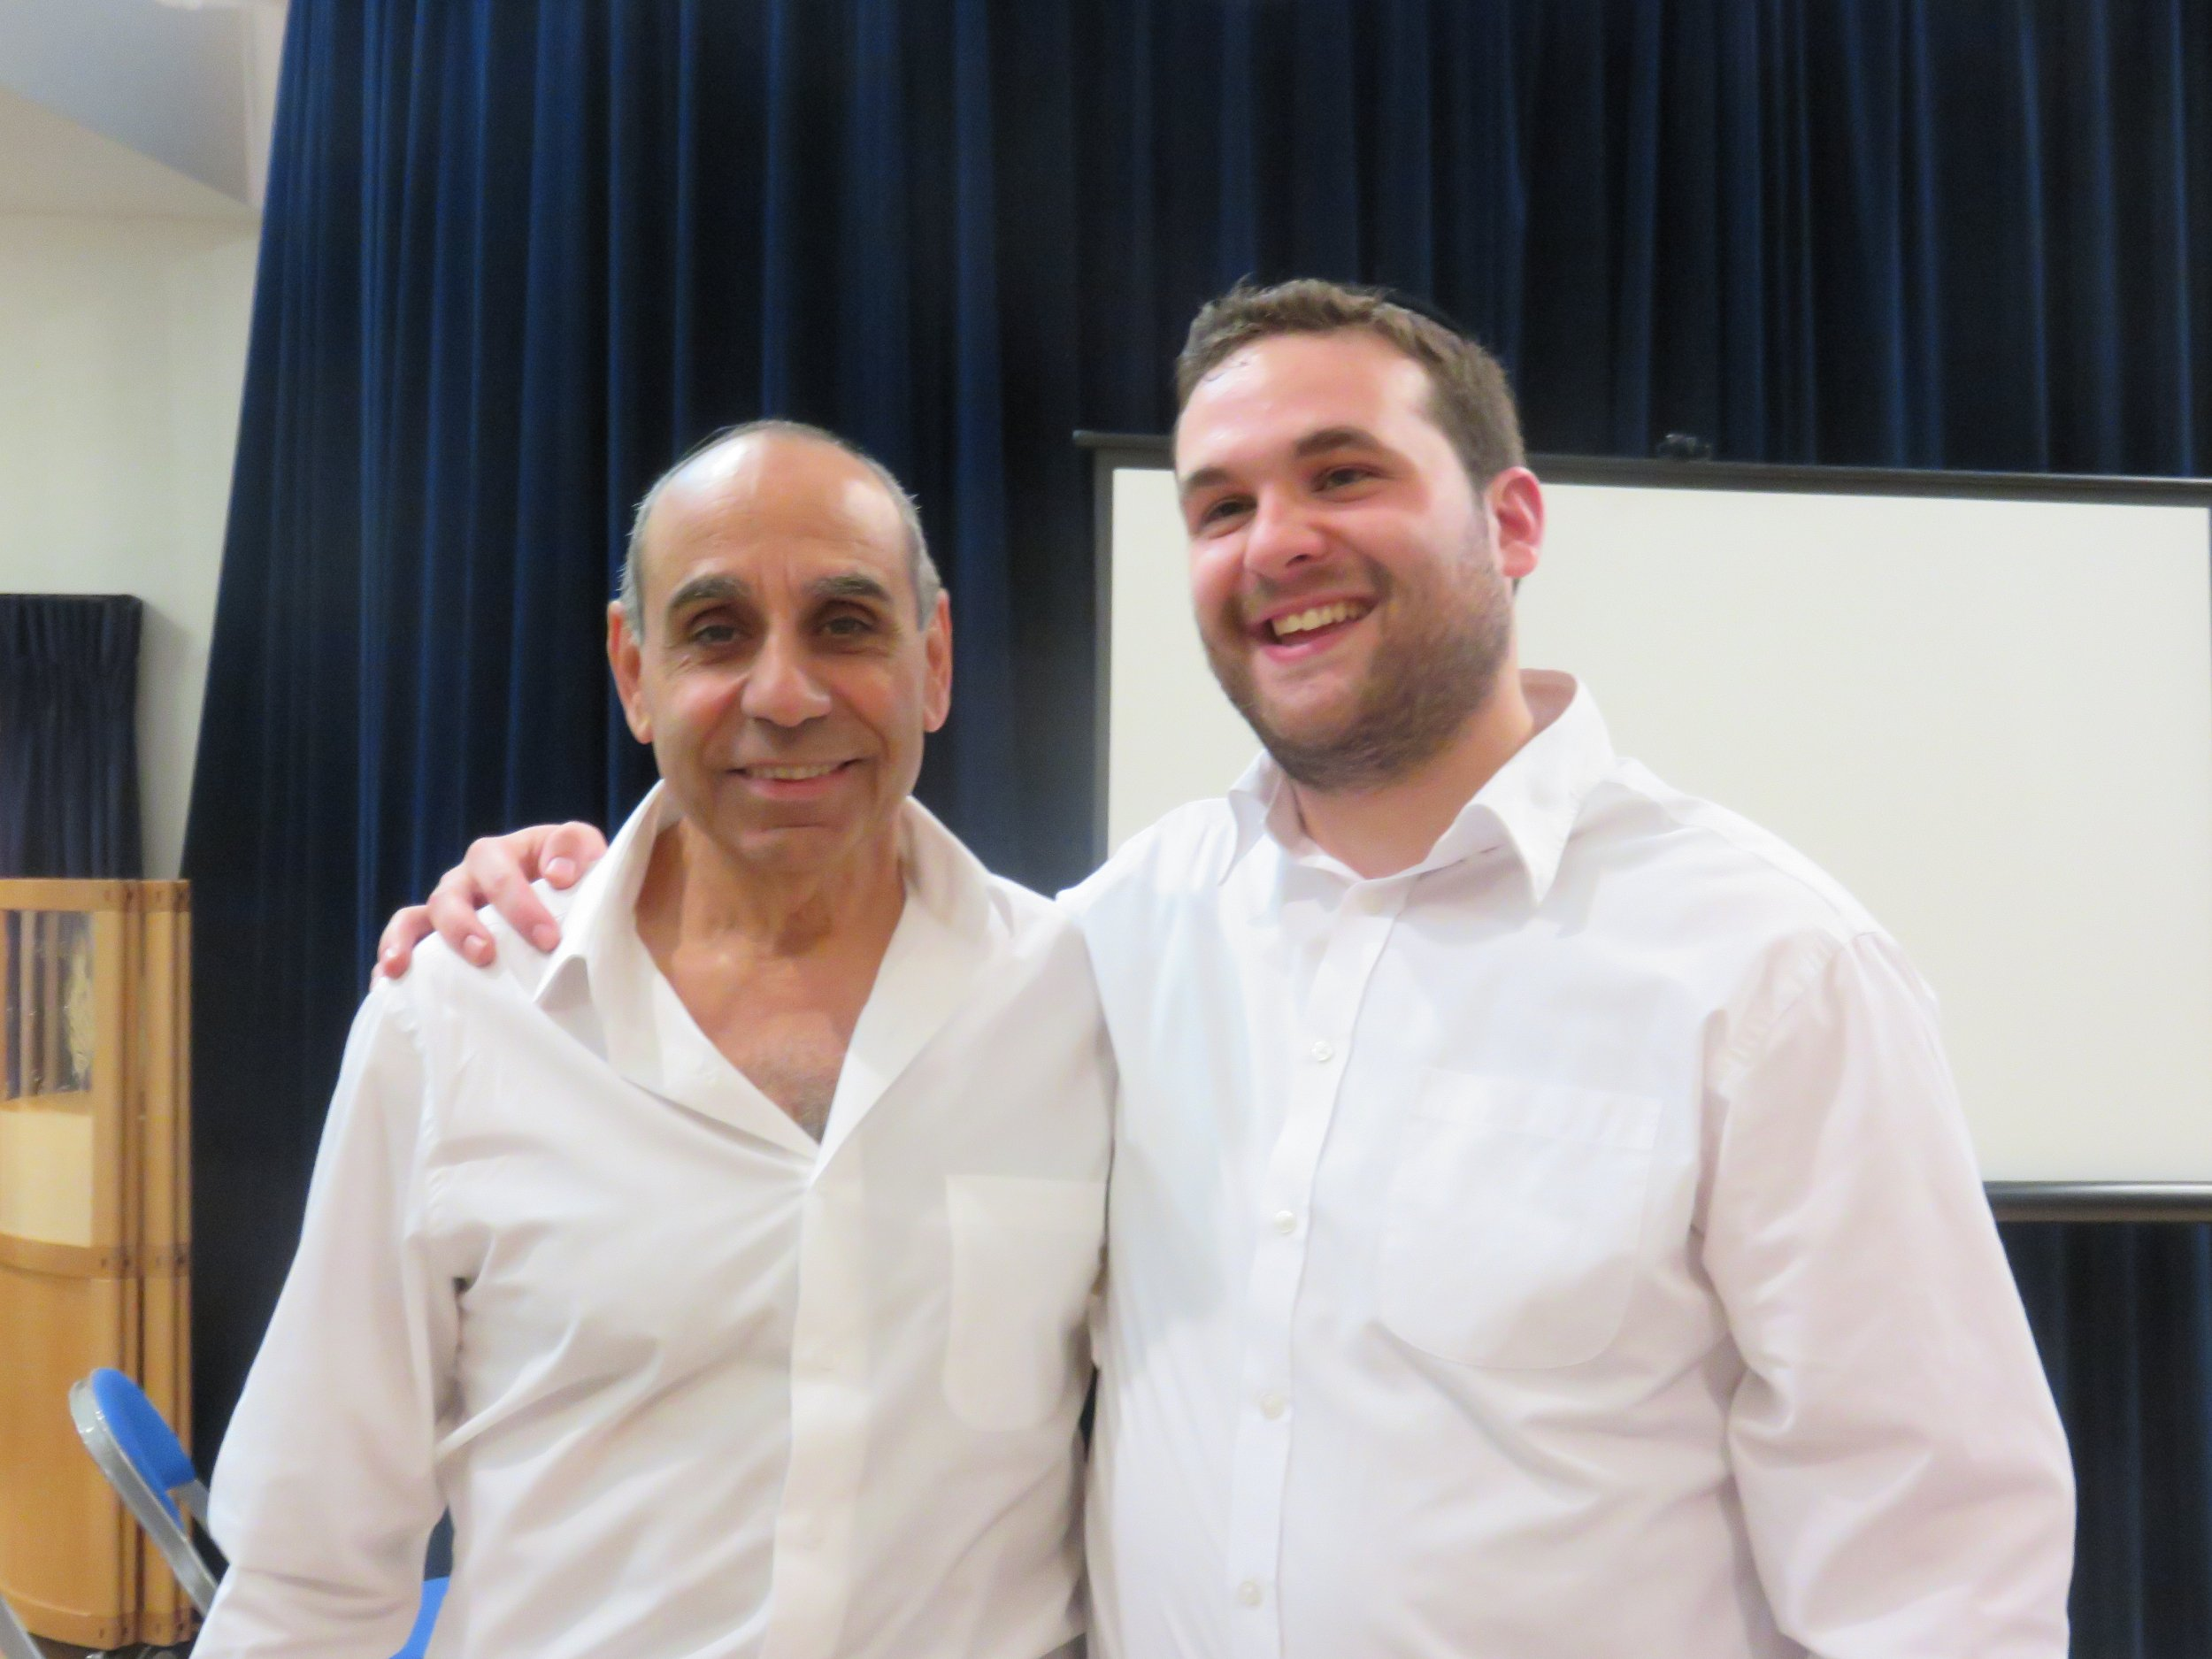 Sassy Reuvein & Chazan Yossi aunders at the Engage talk 'Operation Thunderbolt - The Miracle at Entebbe